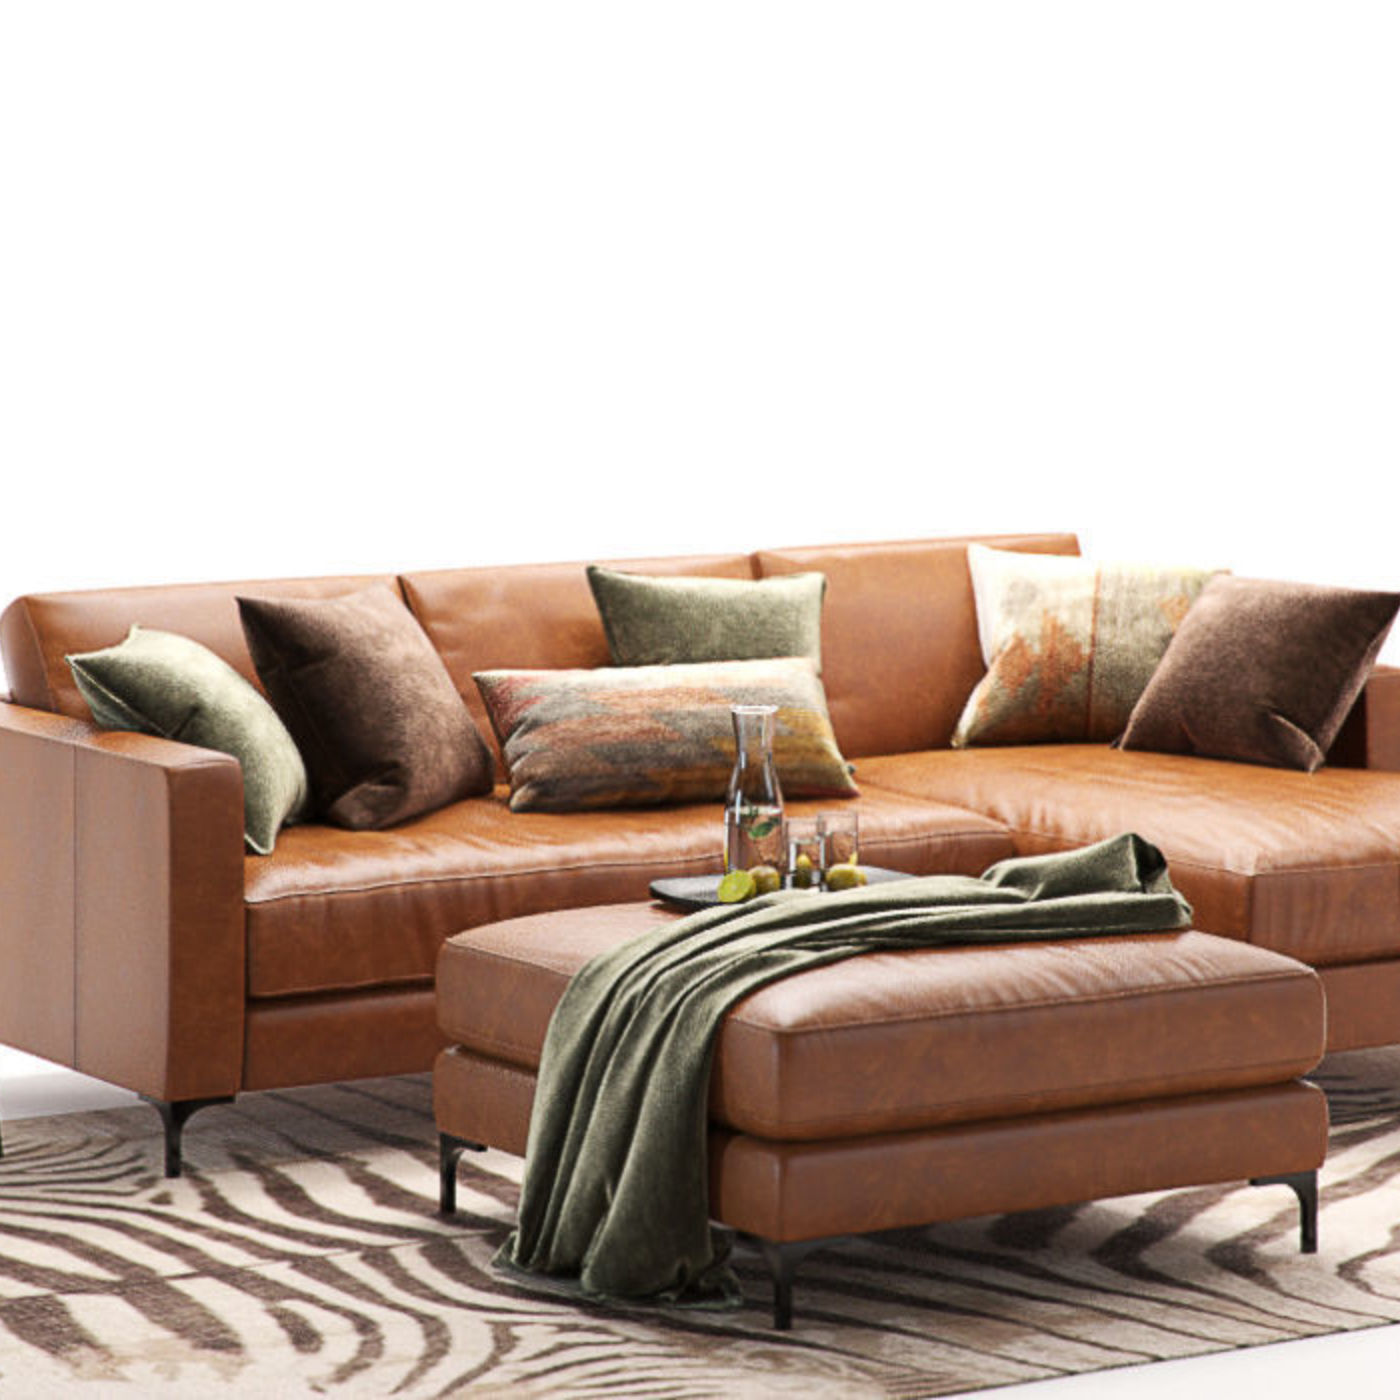 Enjoyable Furniture Visualization Pottery Barn Jake Leather Sofa 2 Caraccident5 Cool Chair Designs And Ideas Caraccident5Info